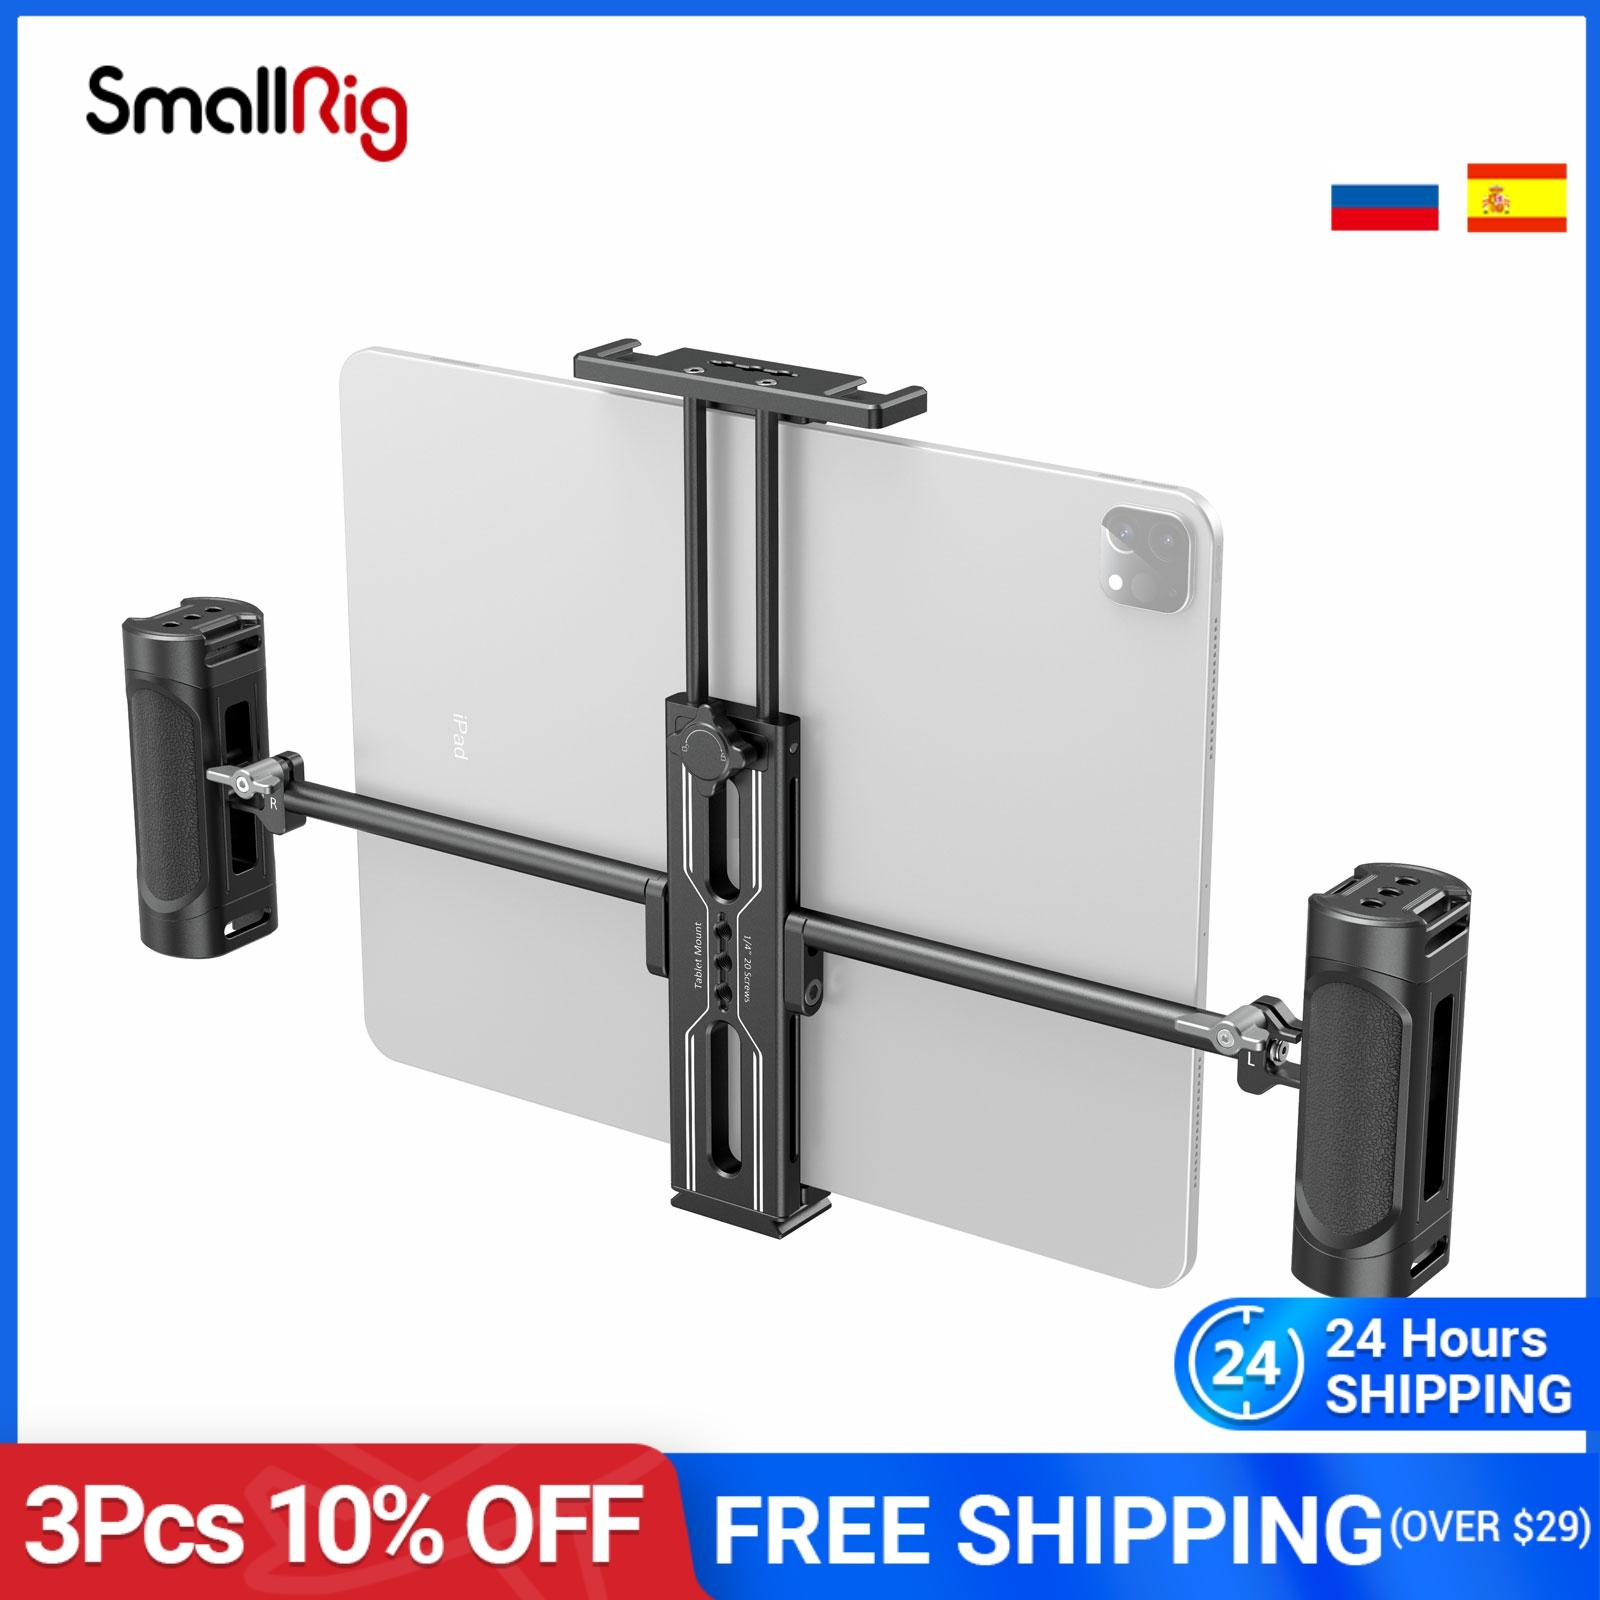 """SmallRig Tablet Metal Holder with Dual Handgrip for iPad Tripod Mount Adapter for iPad Mini Air Pro Surface Pro (7.9"""" to 12.9"""")"""